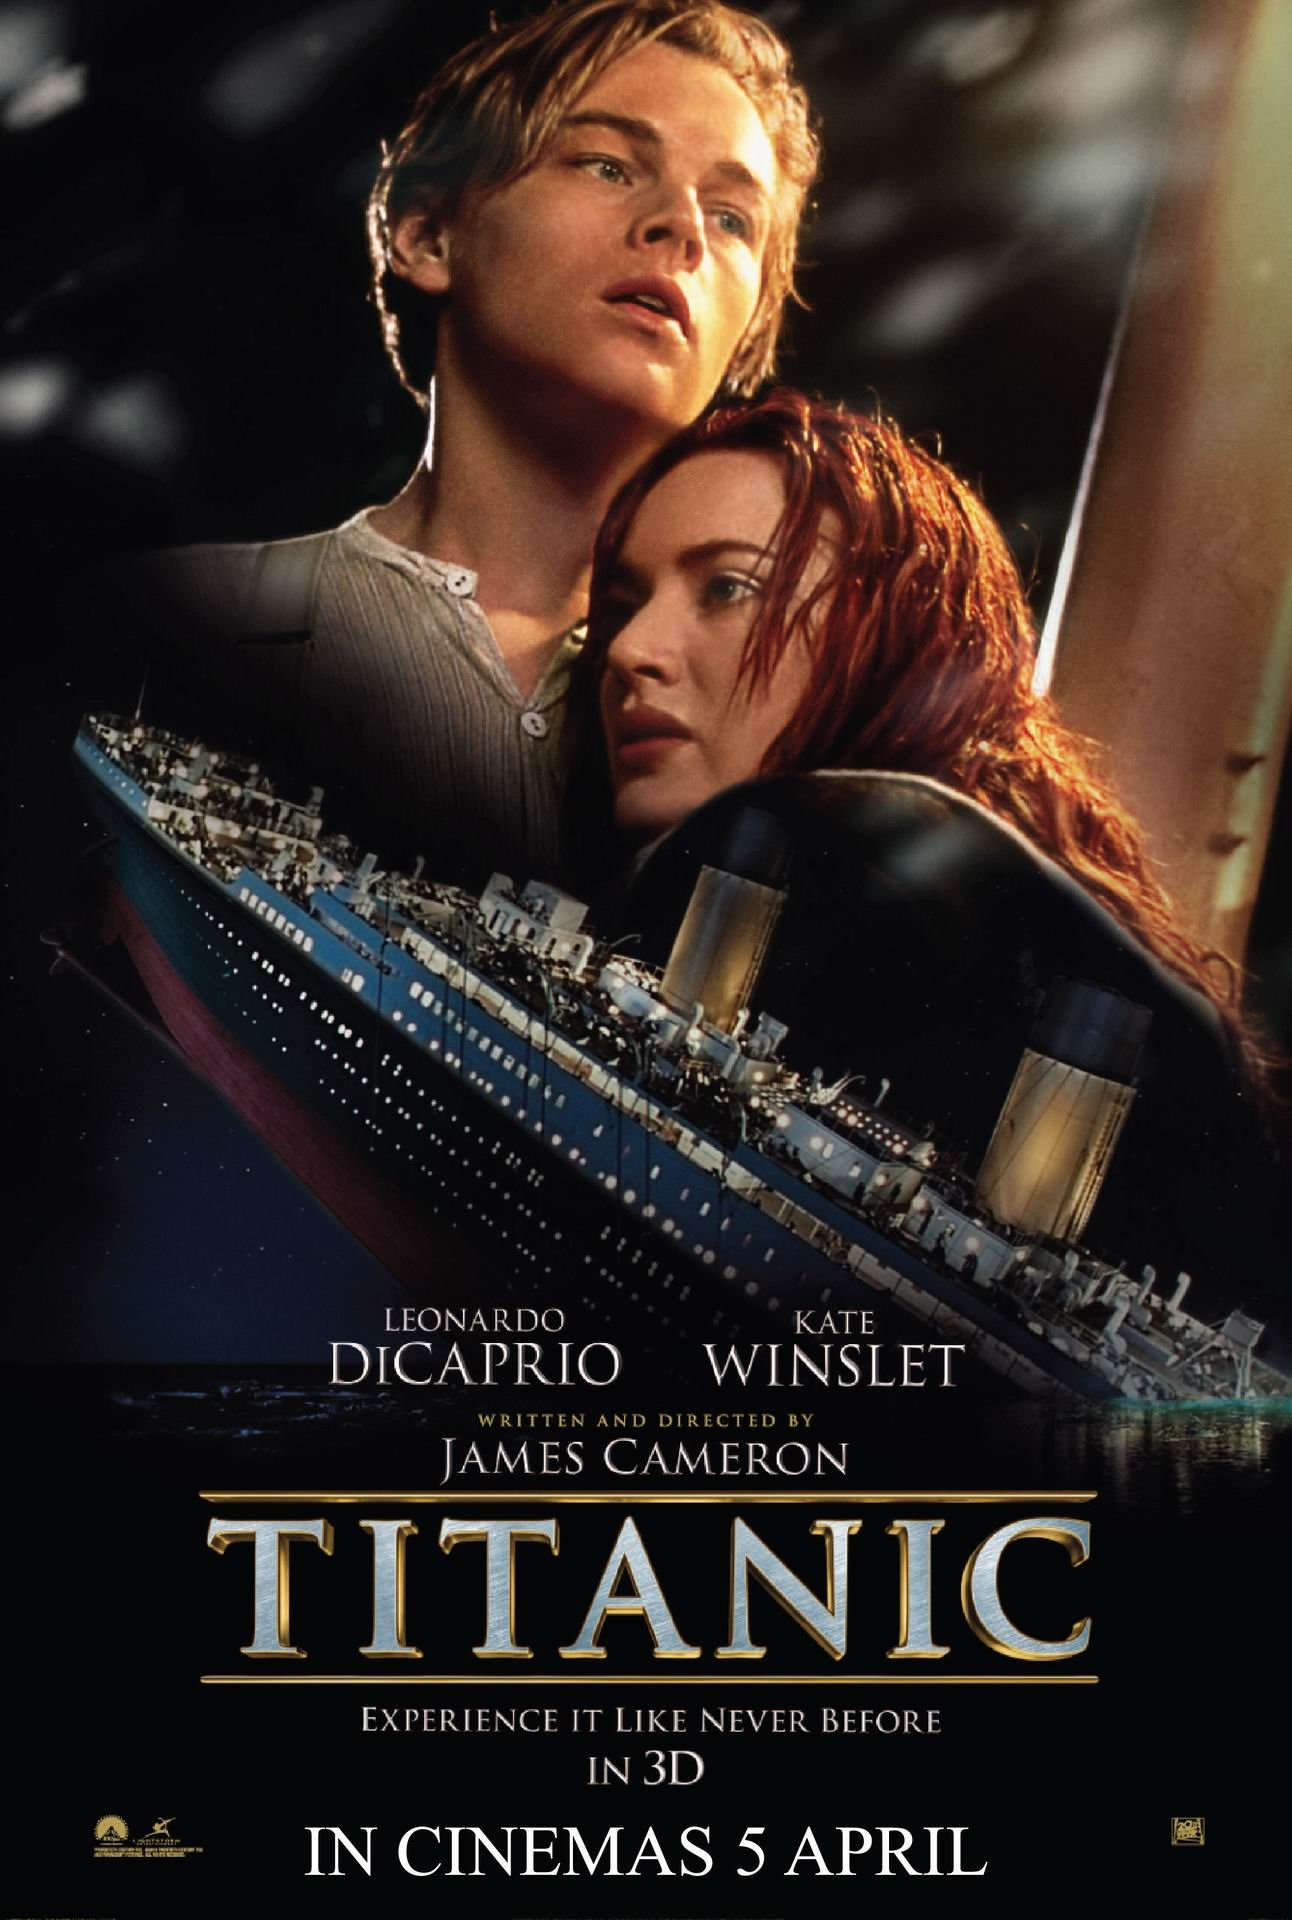 An analysis of the movie titanic one of the most inspiring movies